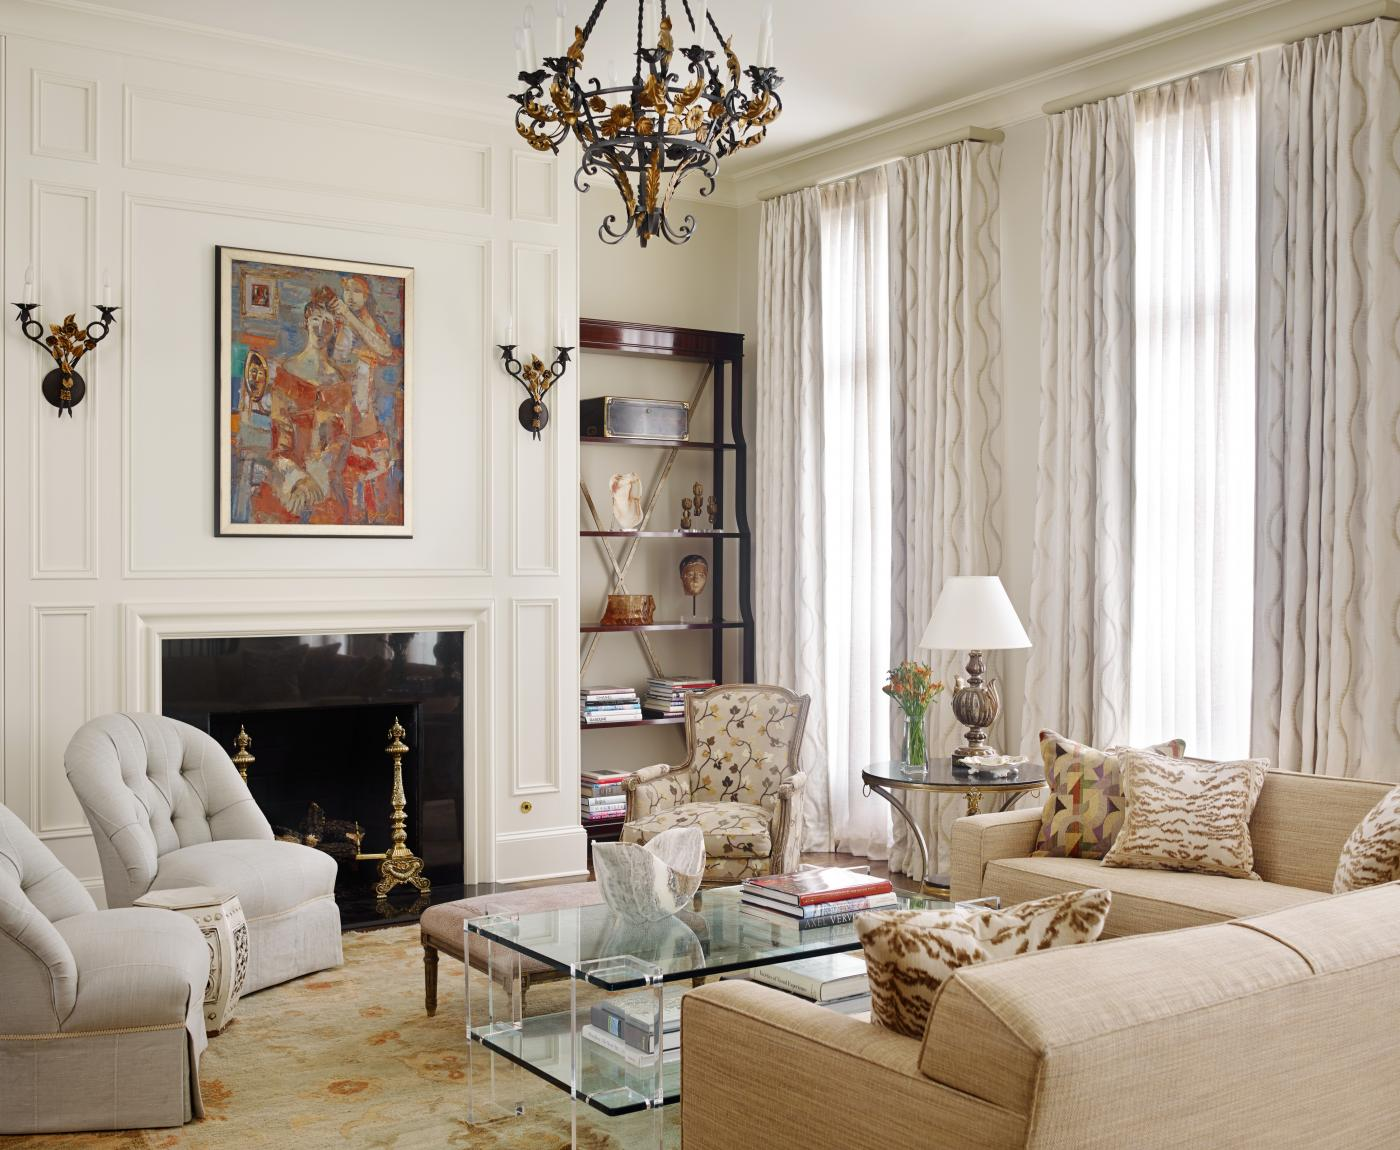 A buckhead townhouse by c weaks interiors inc for Tranquil living room